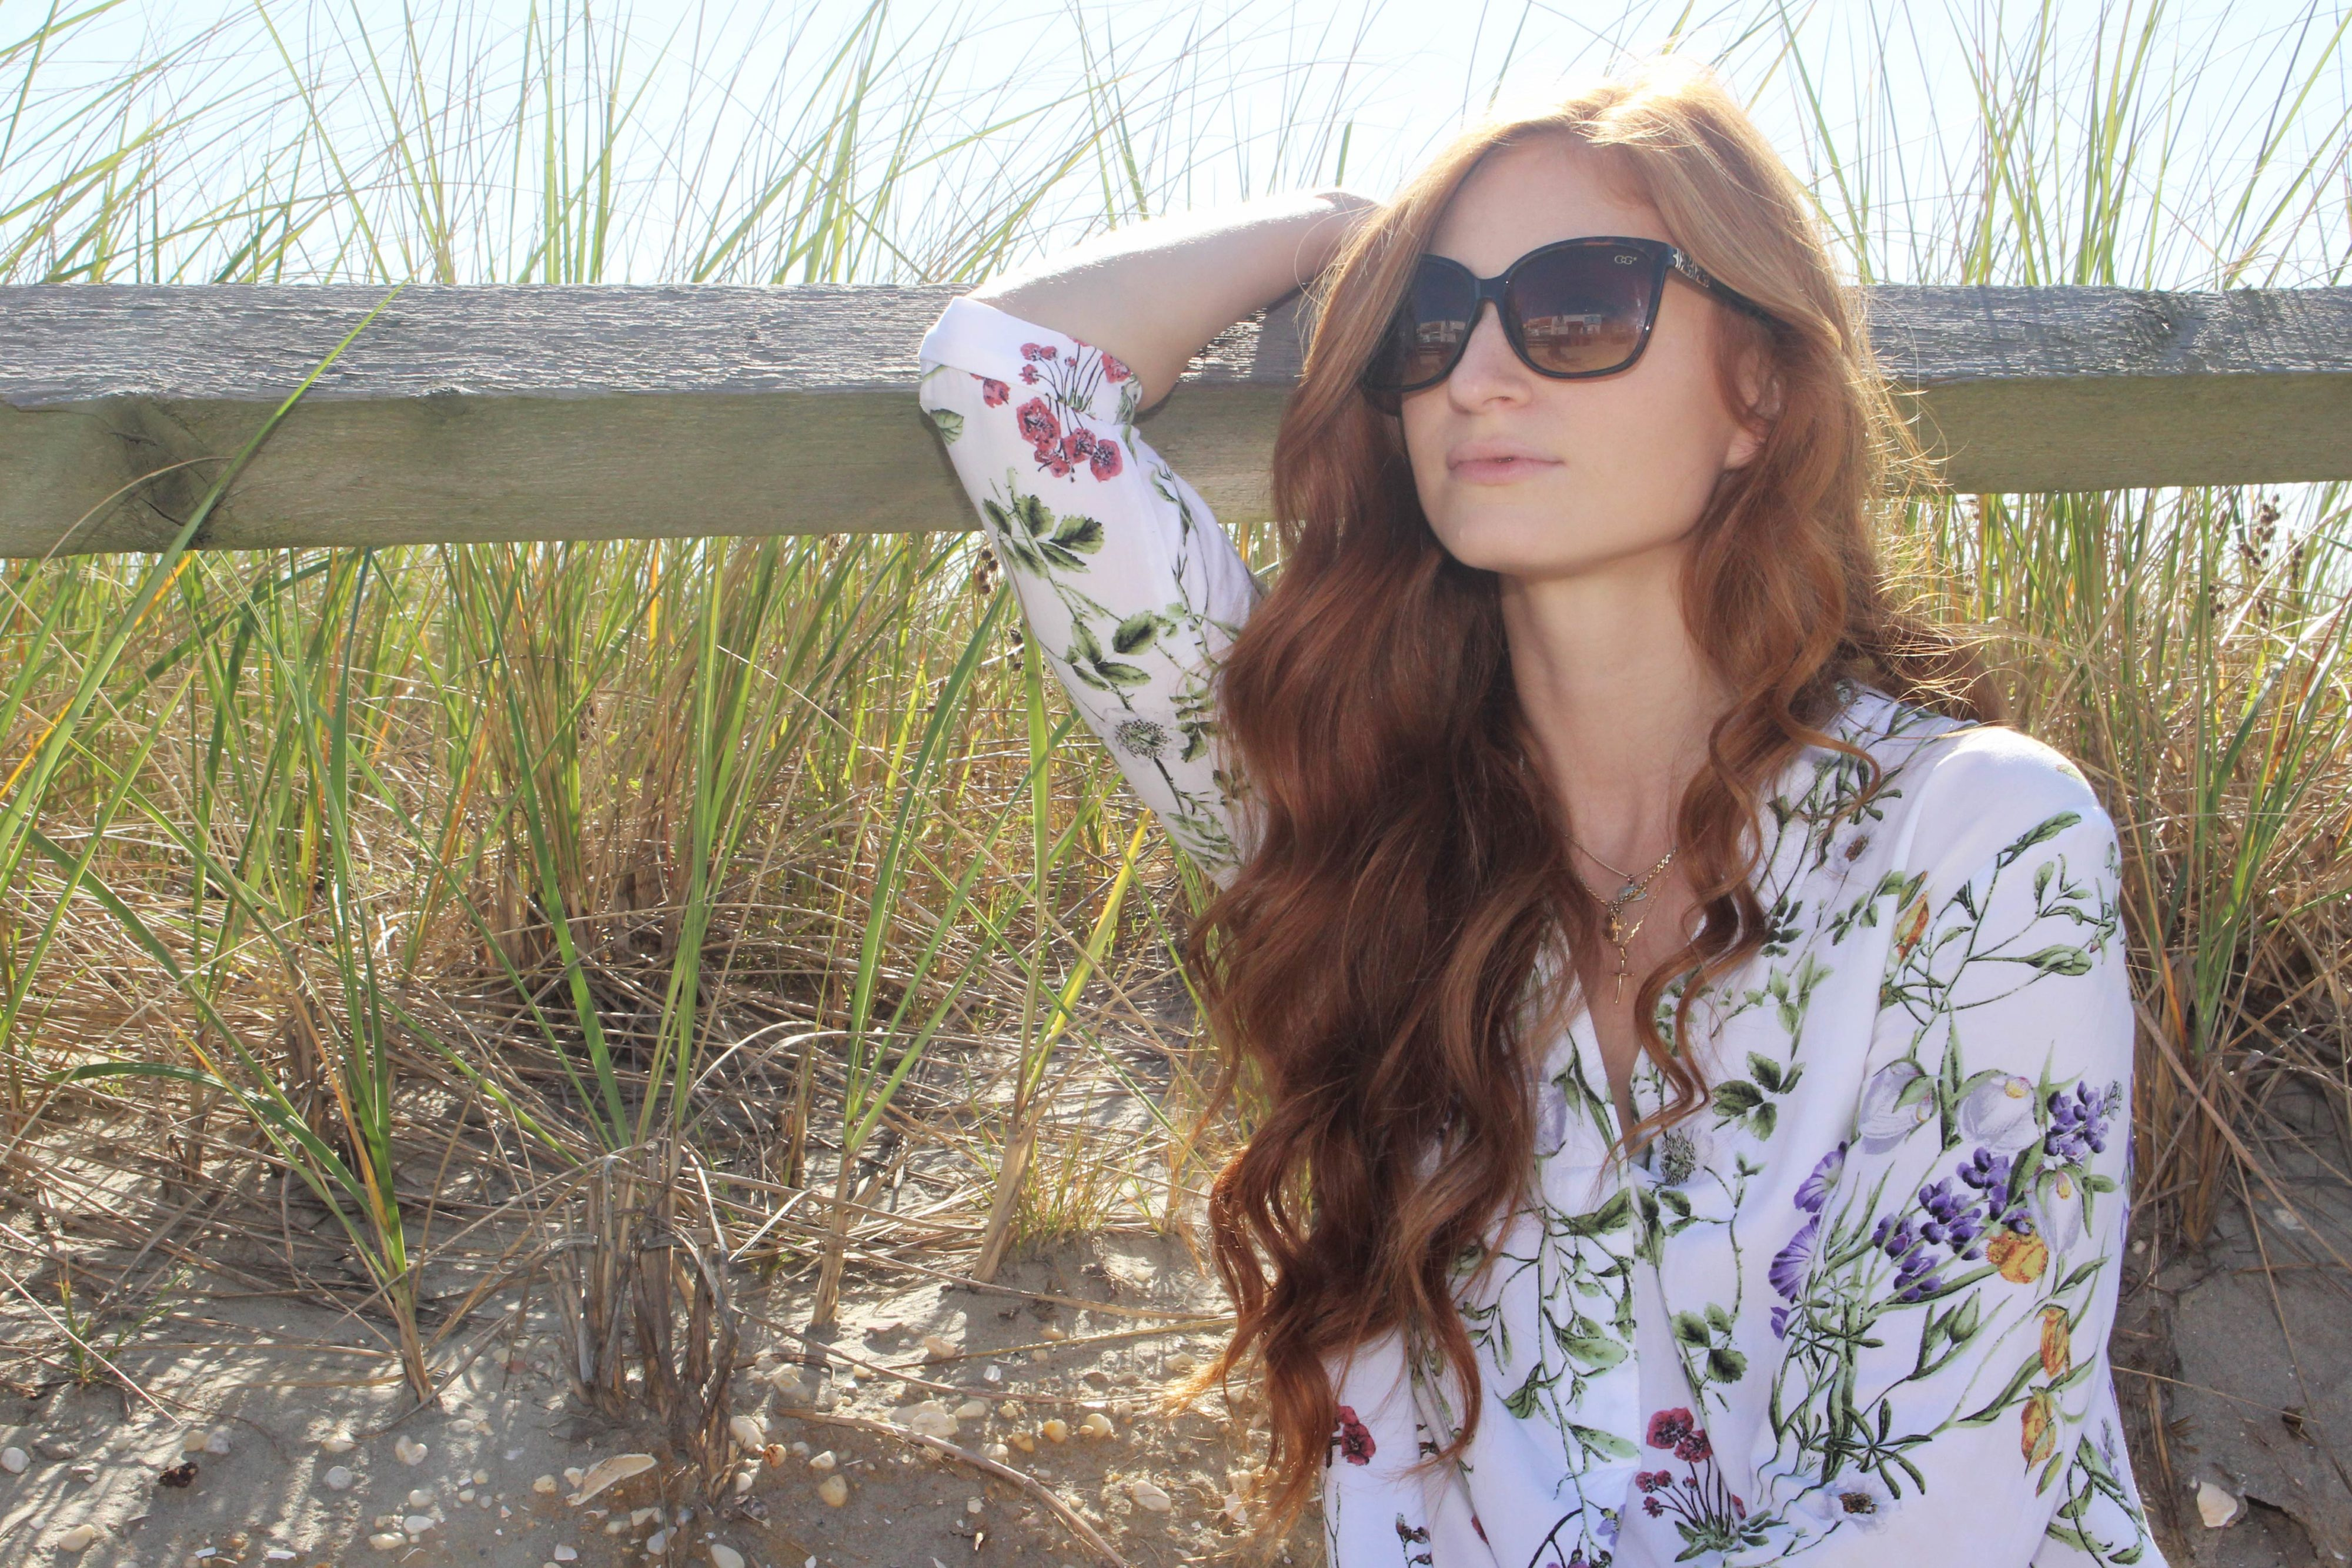 Redhead leaning on fense at beach in floral dress and sunglasses